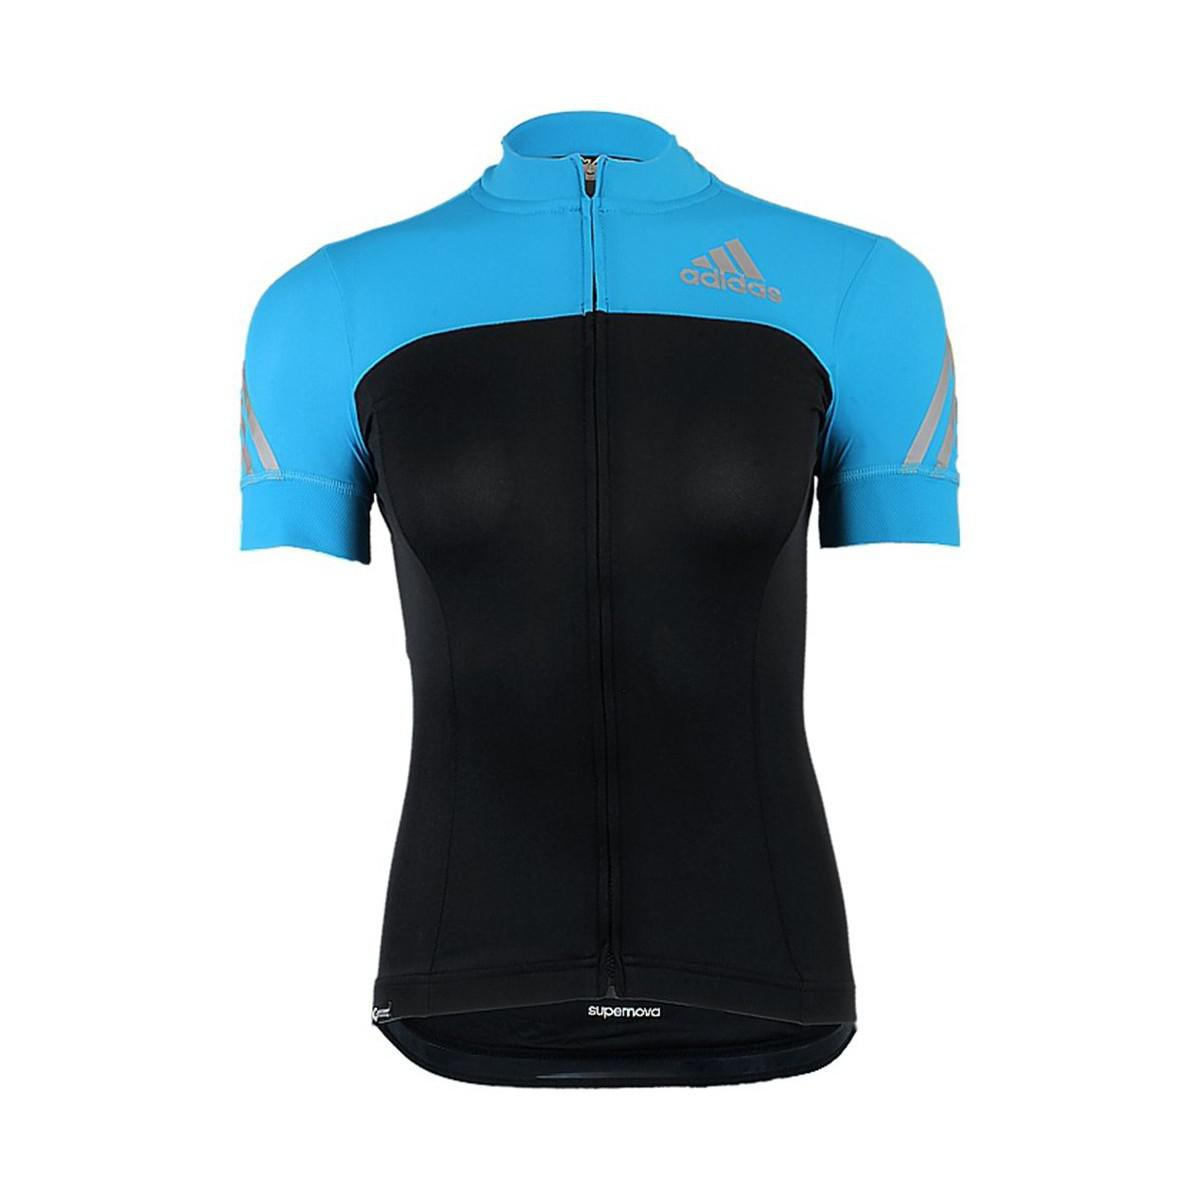 Adidas - Supernova Shortsleeve Cycling Jersey W Women s T Shirt In Black -  Lyst. View fullscreen 3406dddb8